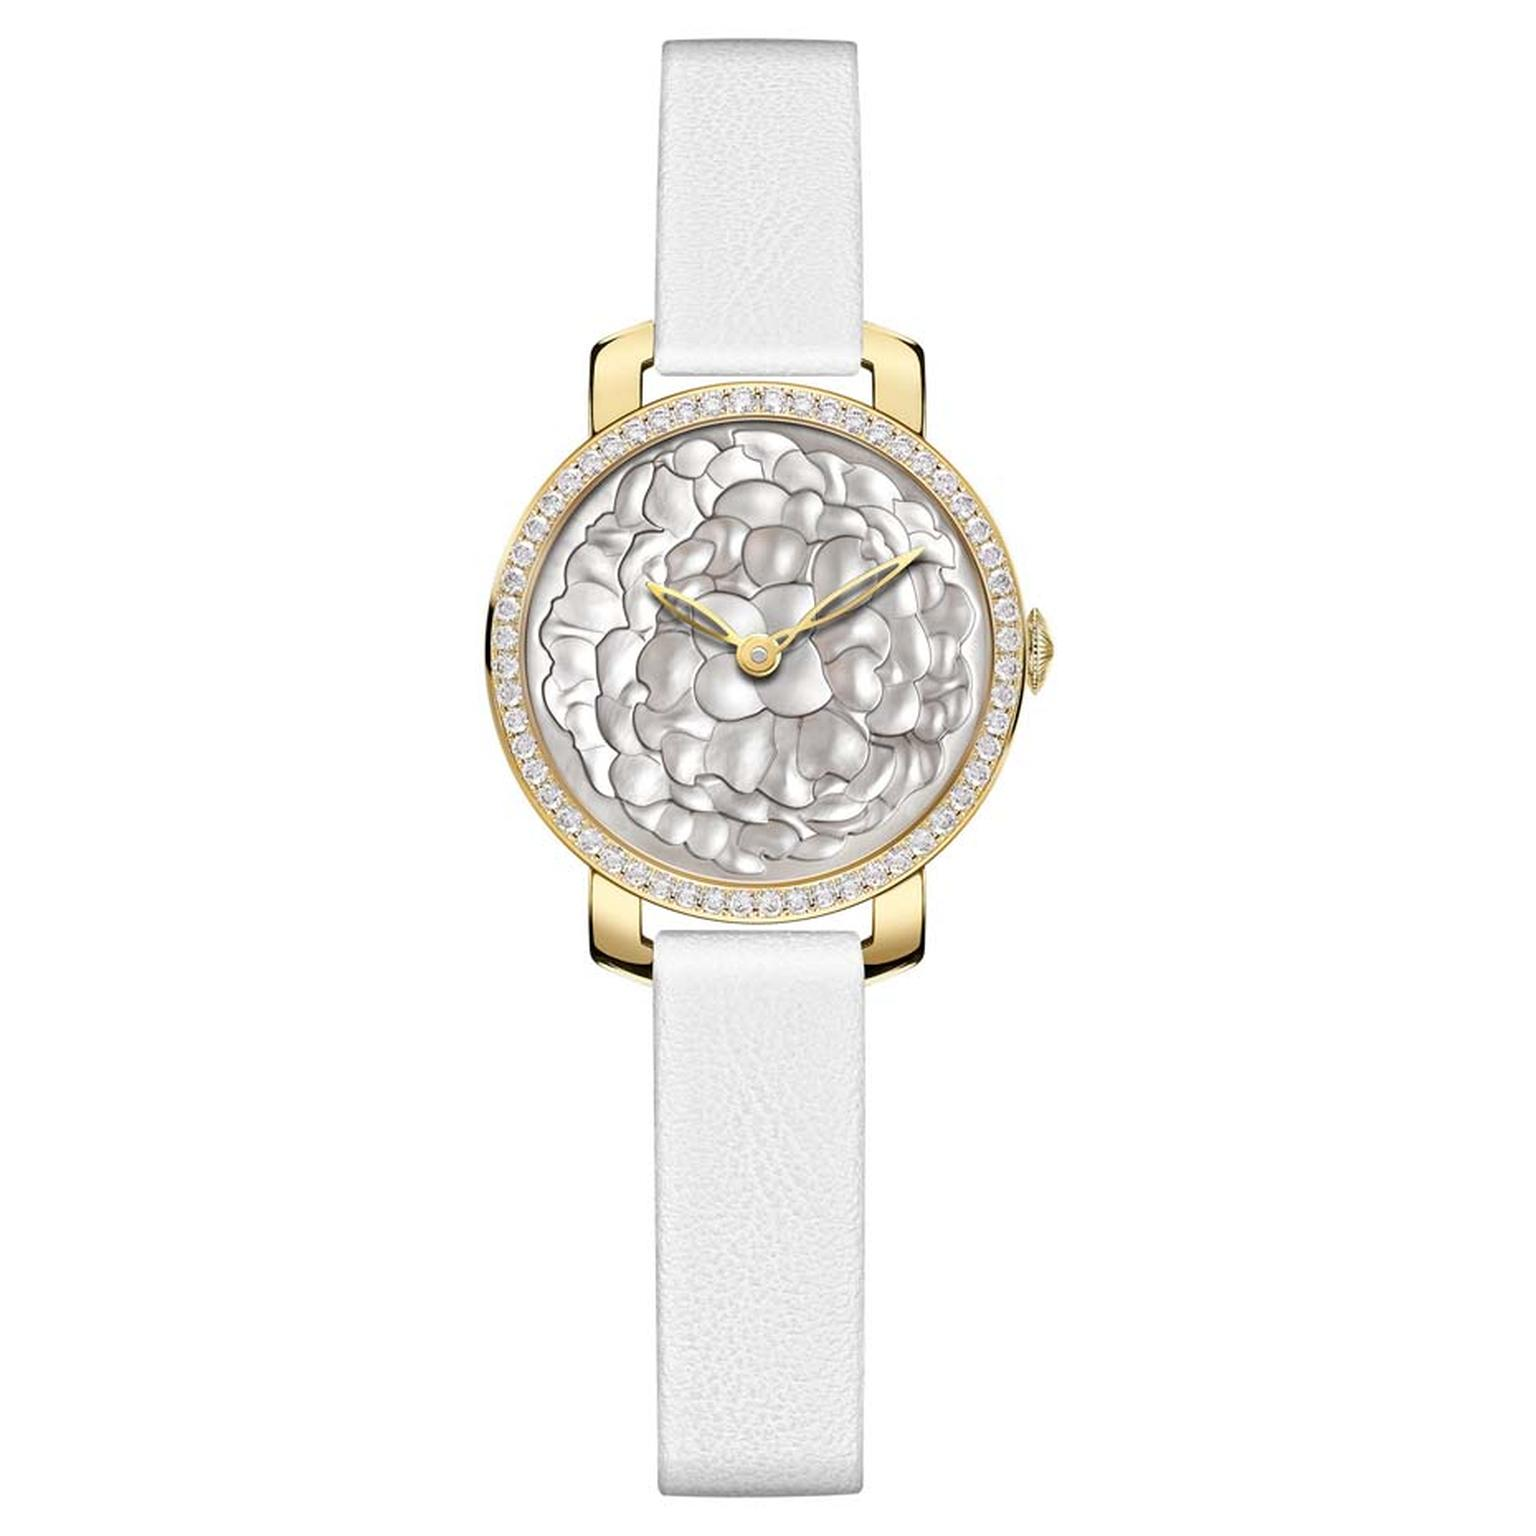 Chaumet Montres Pre´ciuses collection watch in yellow gold featuring a bezel with 56 brilliant-cut diamonds